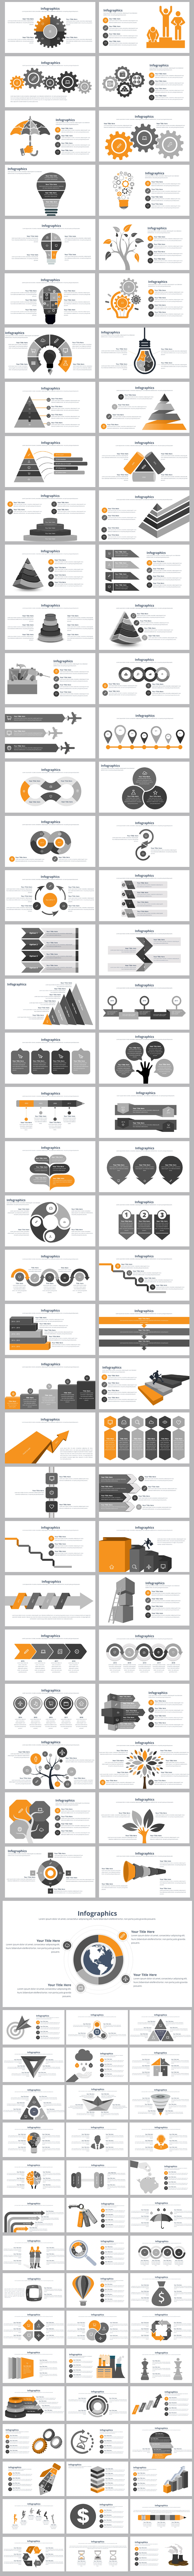 Annual Report 2019 Powerpoint Presentation Template - 1